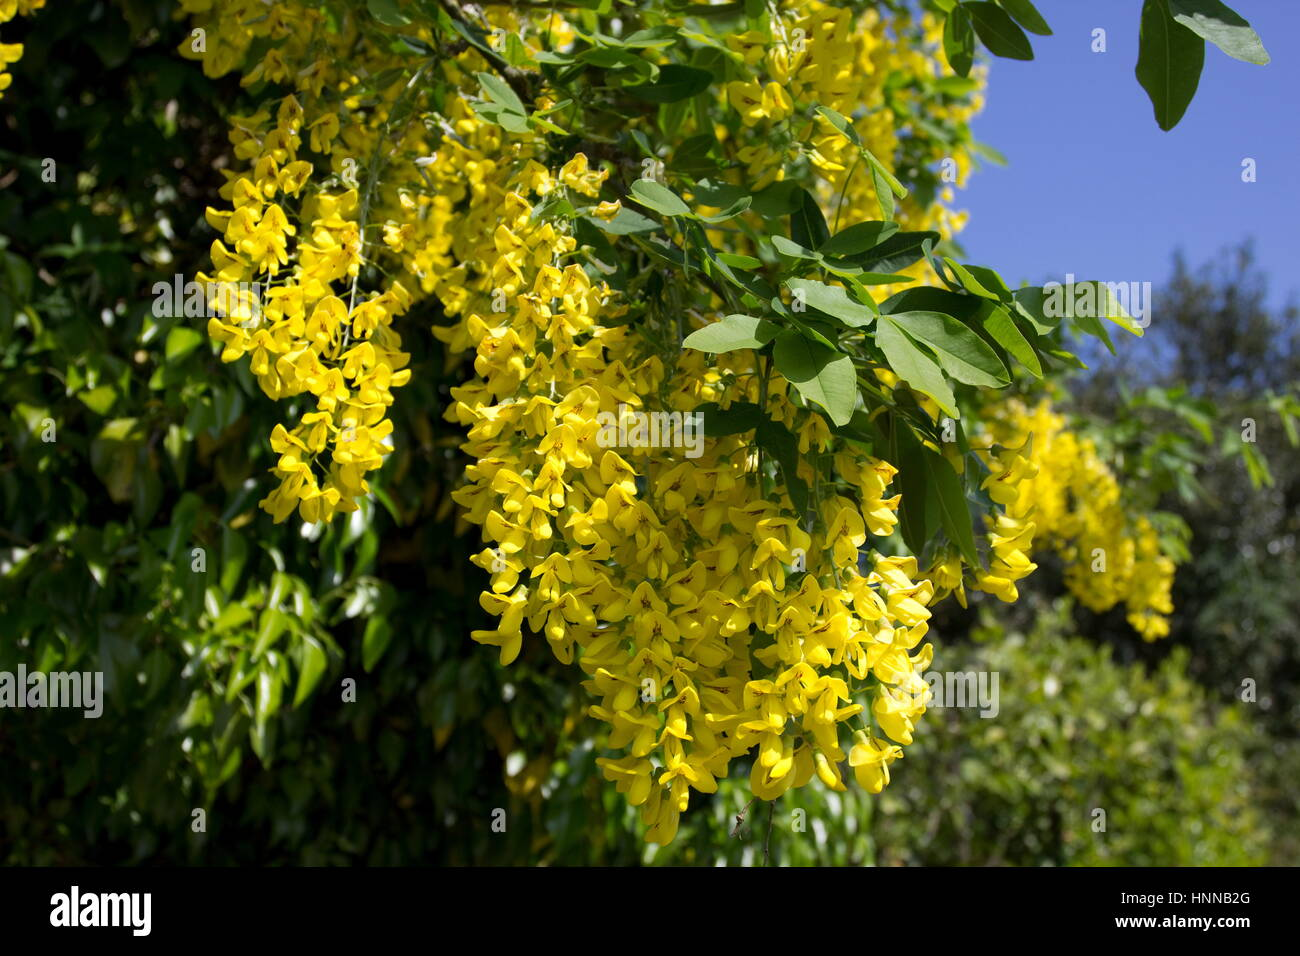 Names Of Trees With Pictures Stock Photos Names Of Trees With